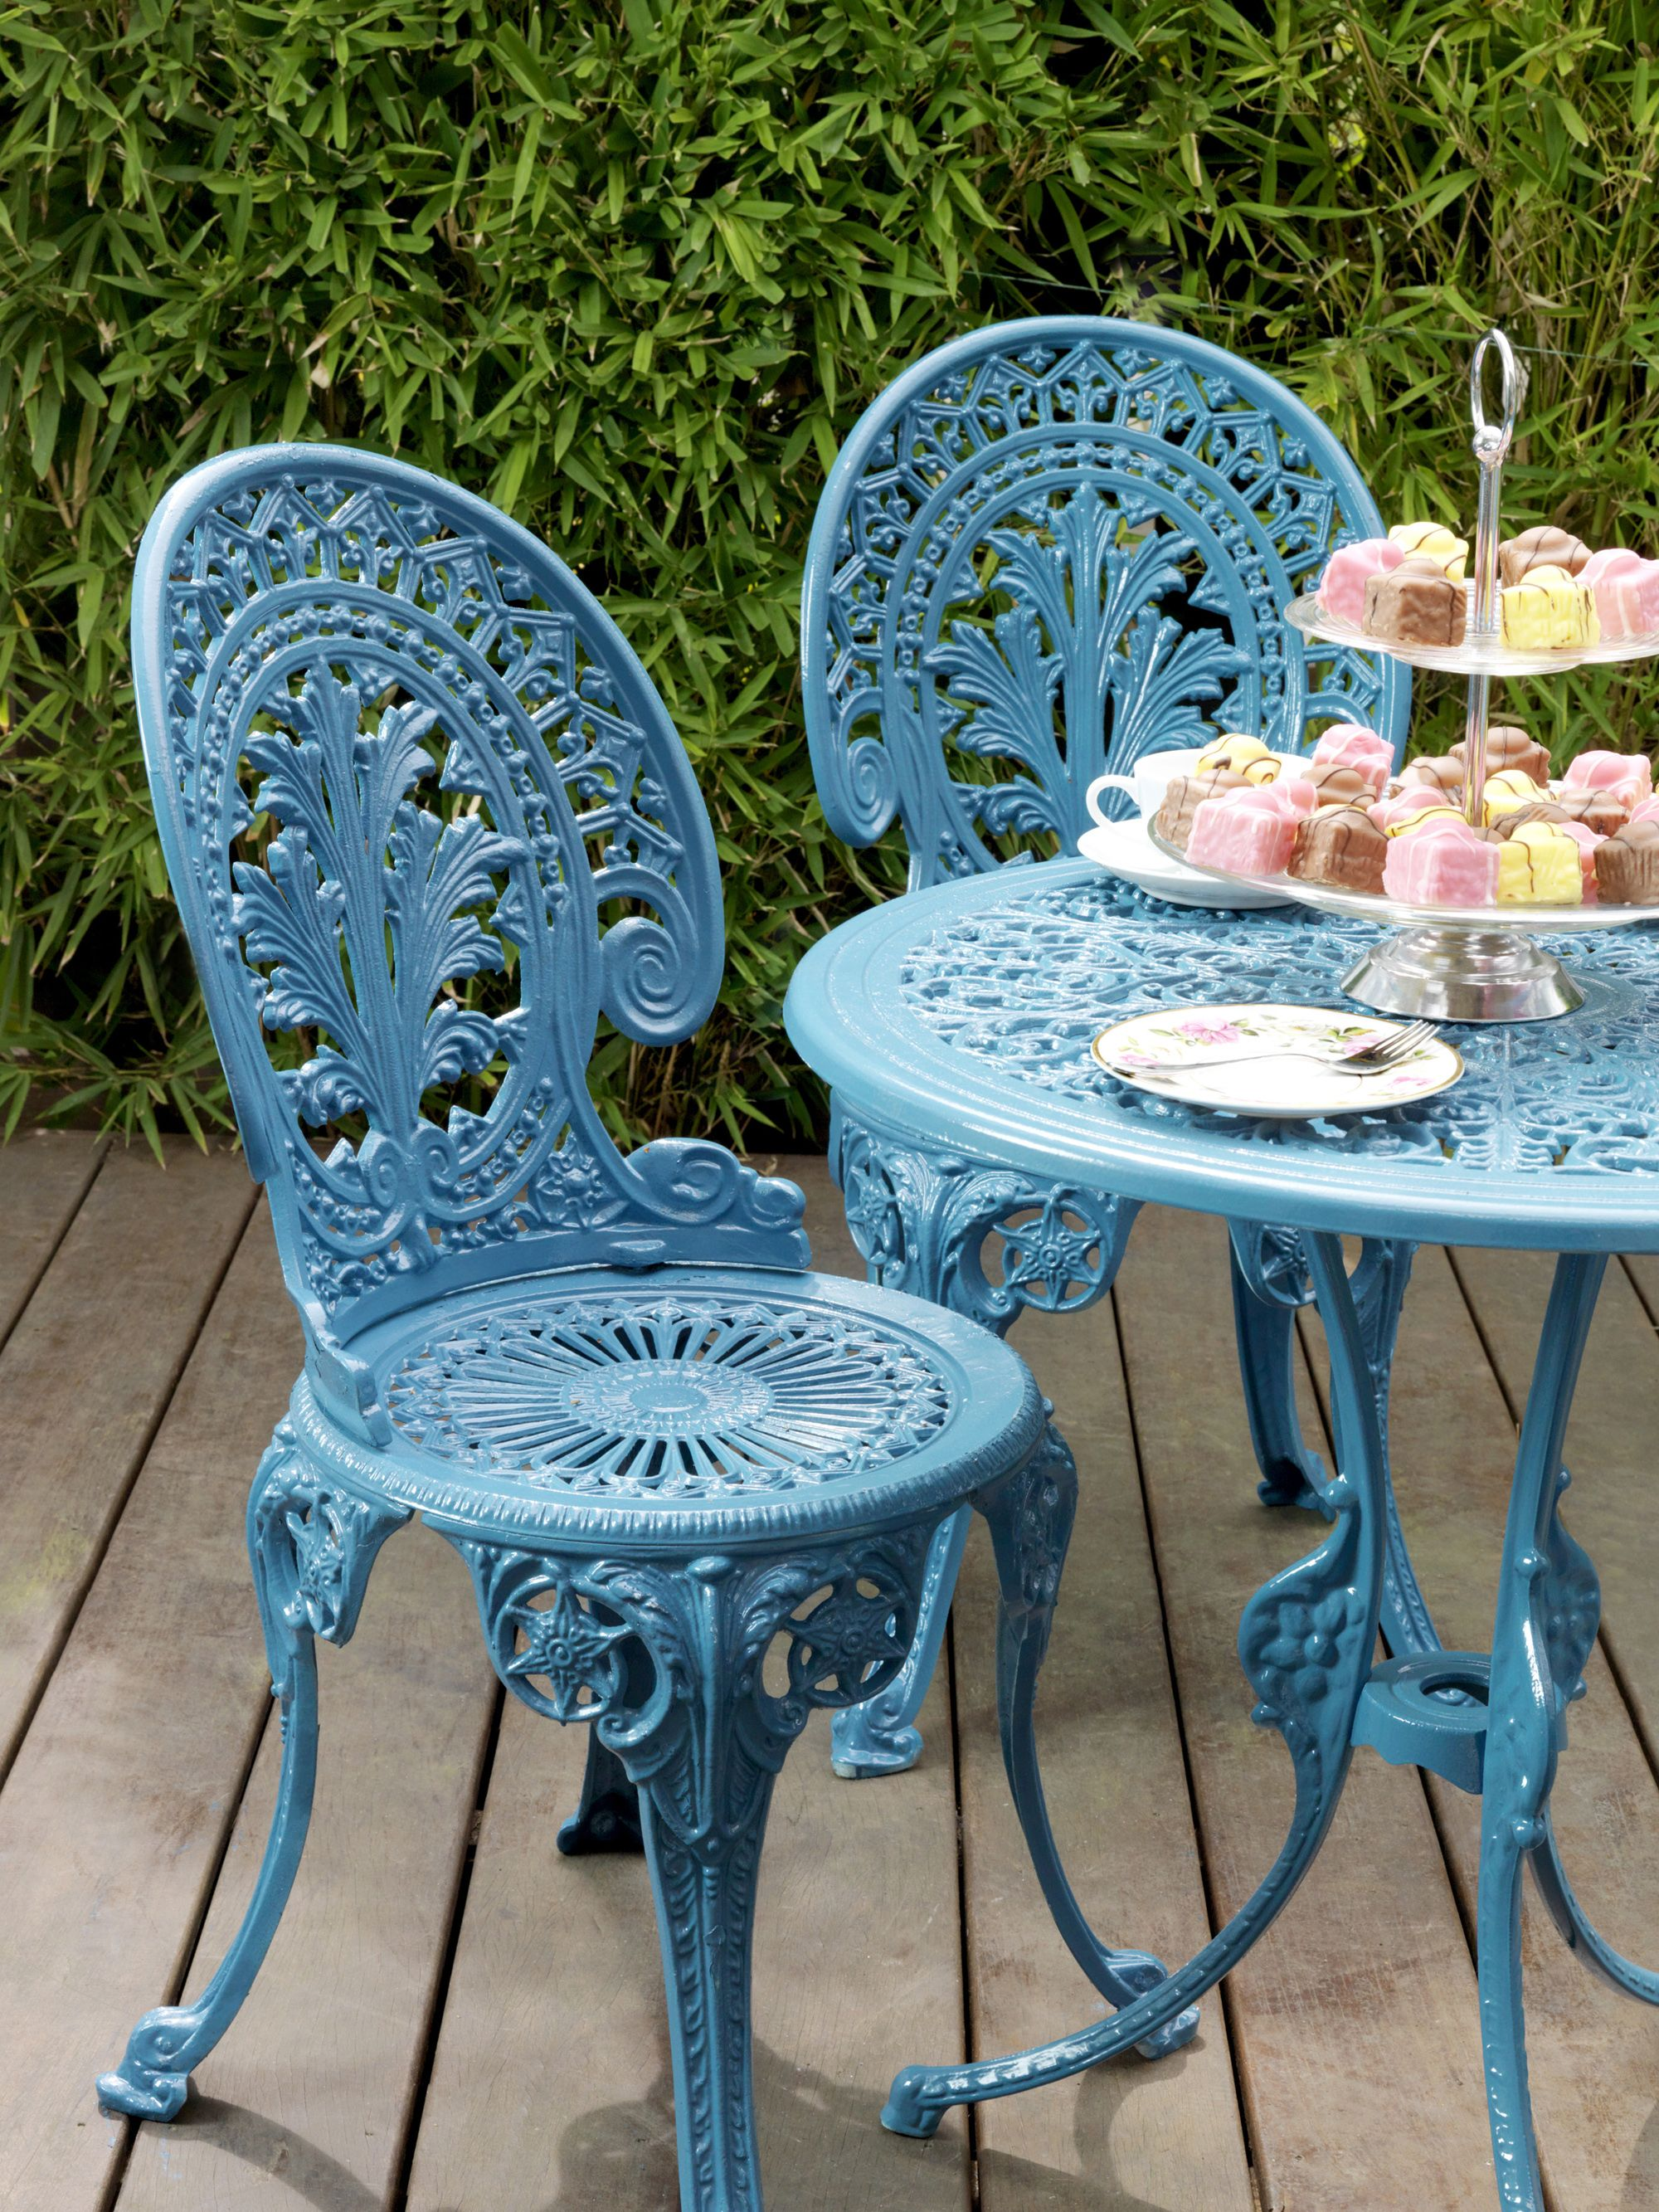 restore your old metal garden furniture and enjoy outdoor eating in